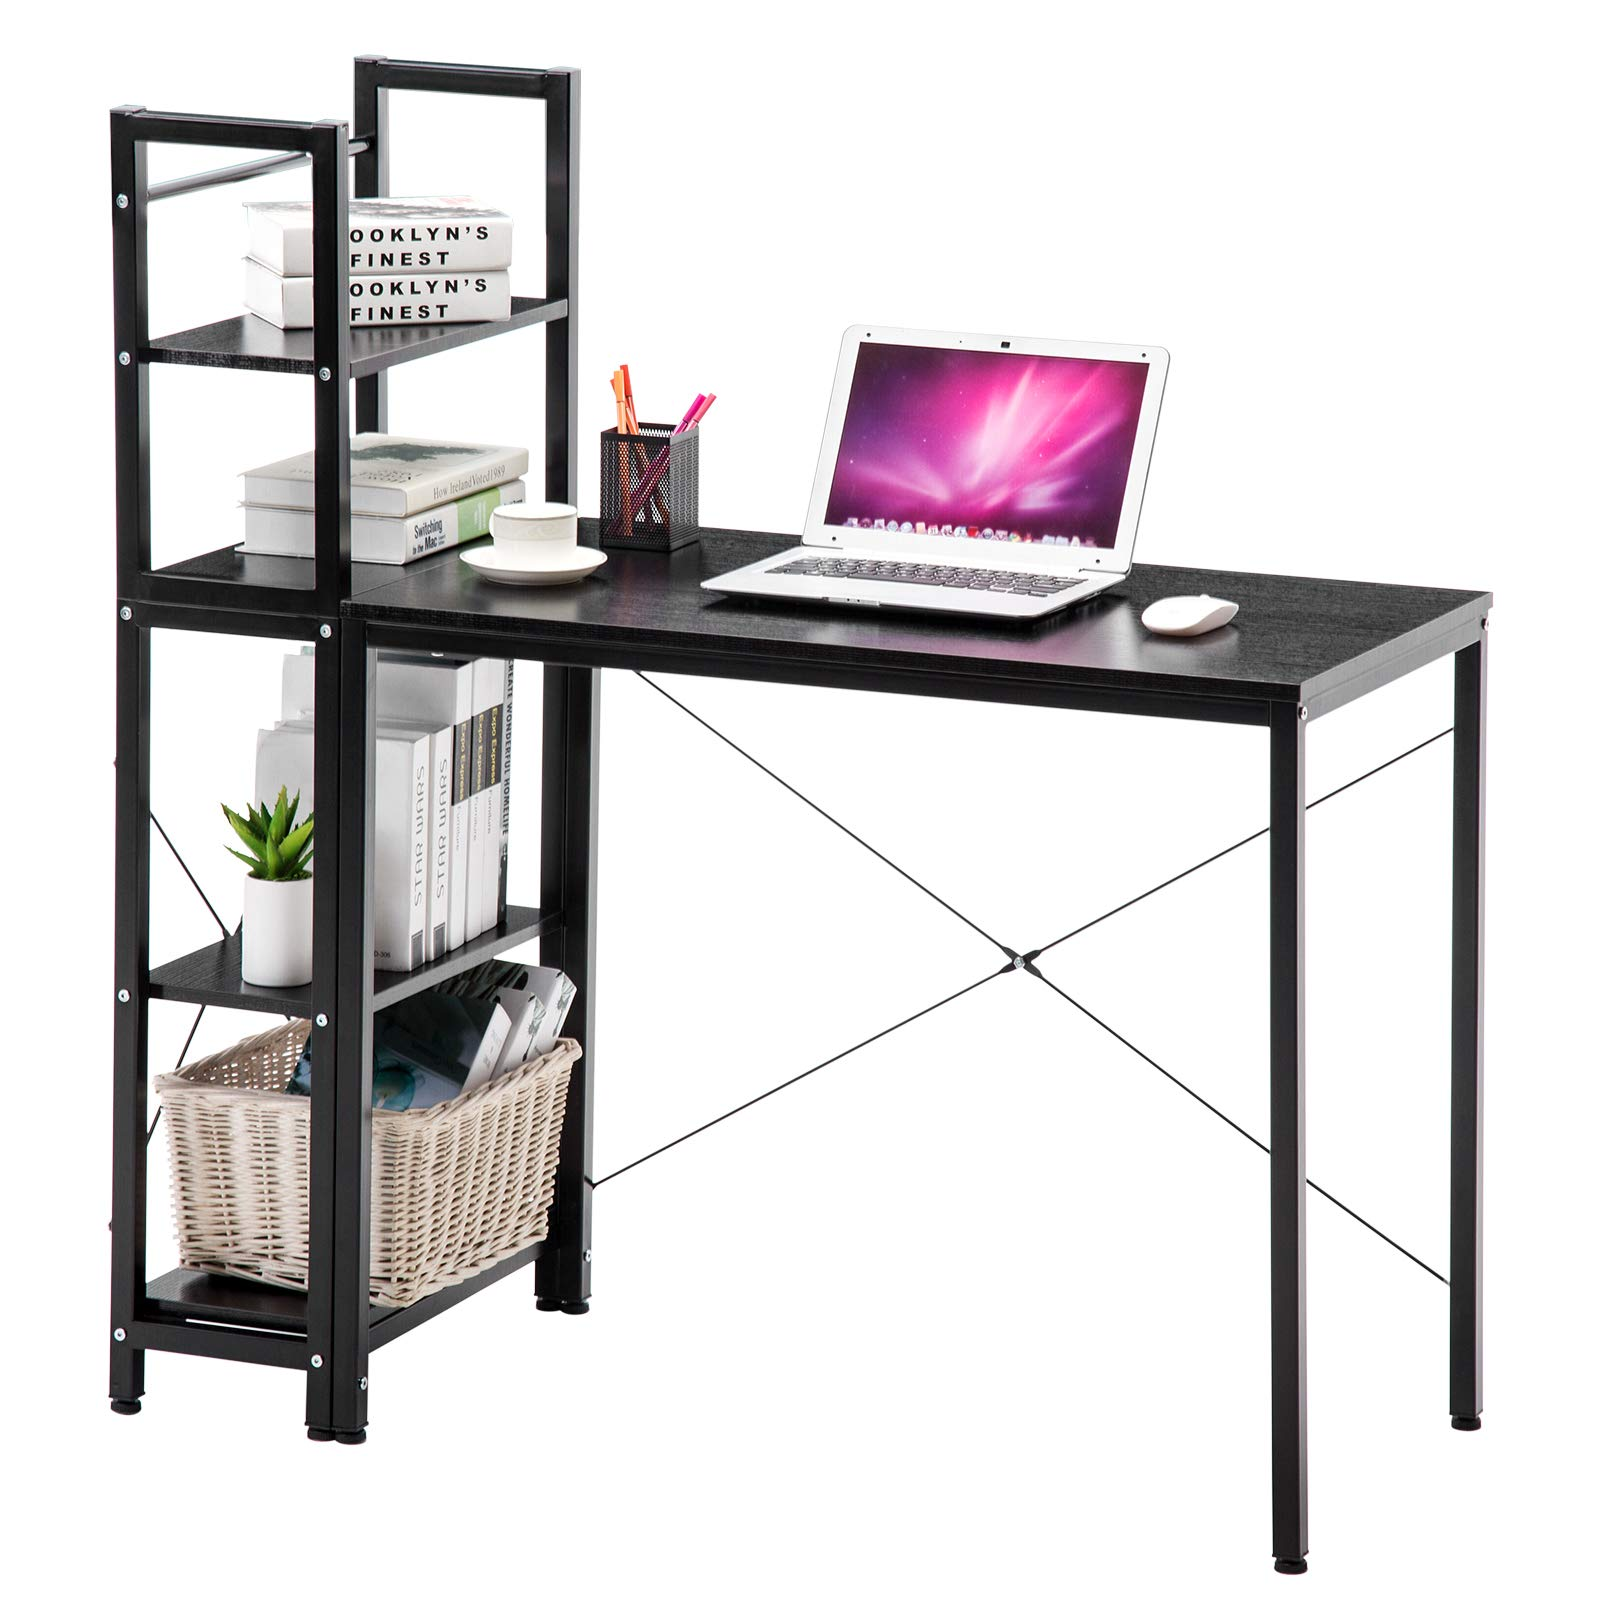 4-EVER Computer Desk with Shelves Modern Style Computer Table Variety of Display Office Table with 4 Tier Bookshelf Study Writing for Home Office Black by 4-EVER